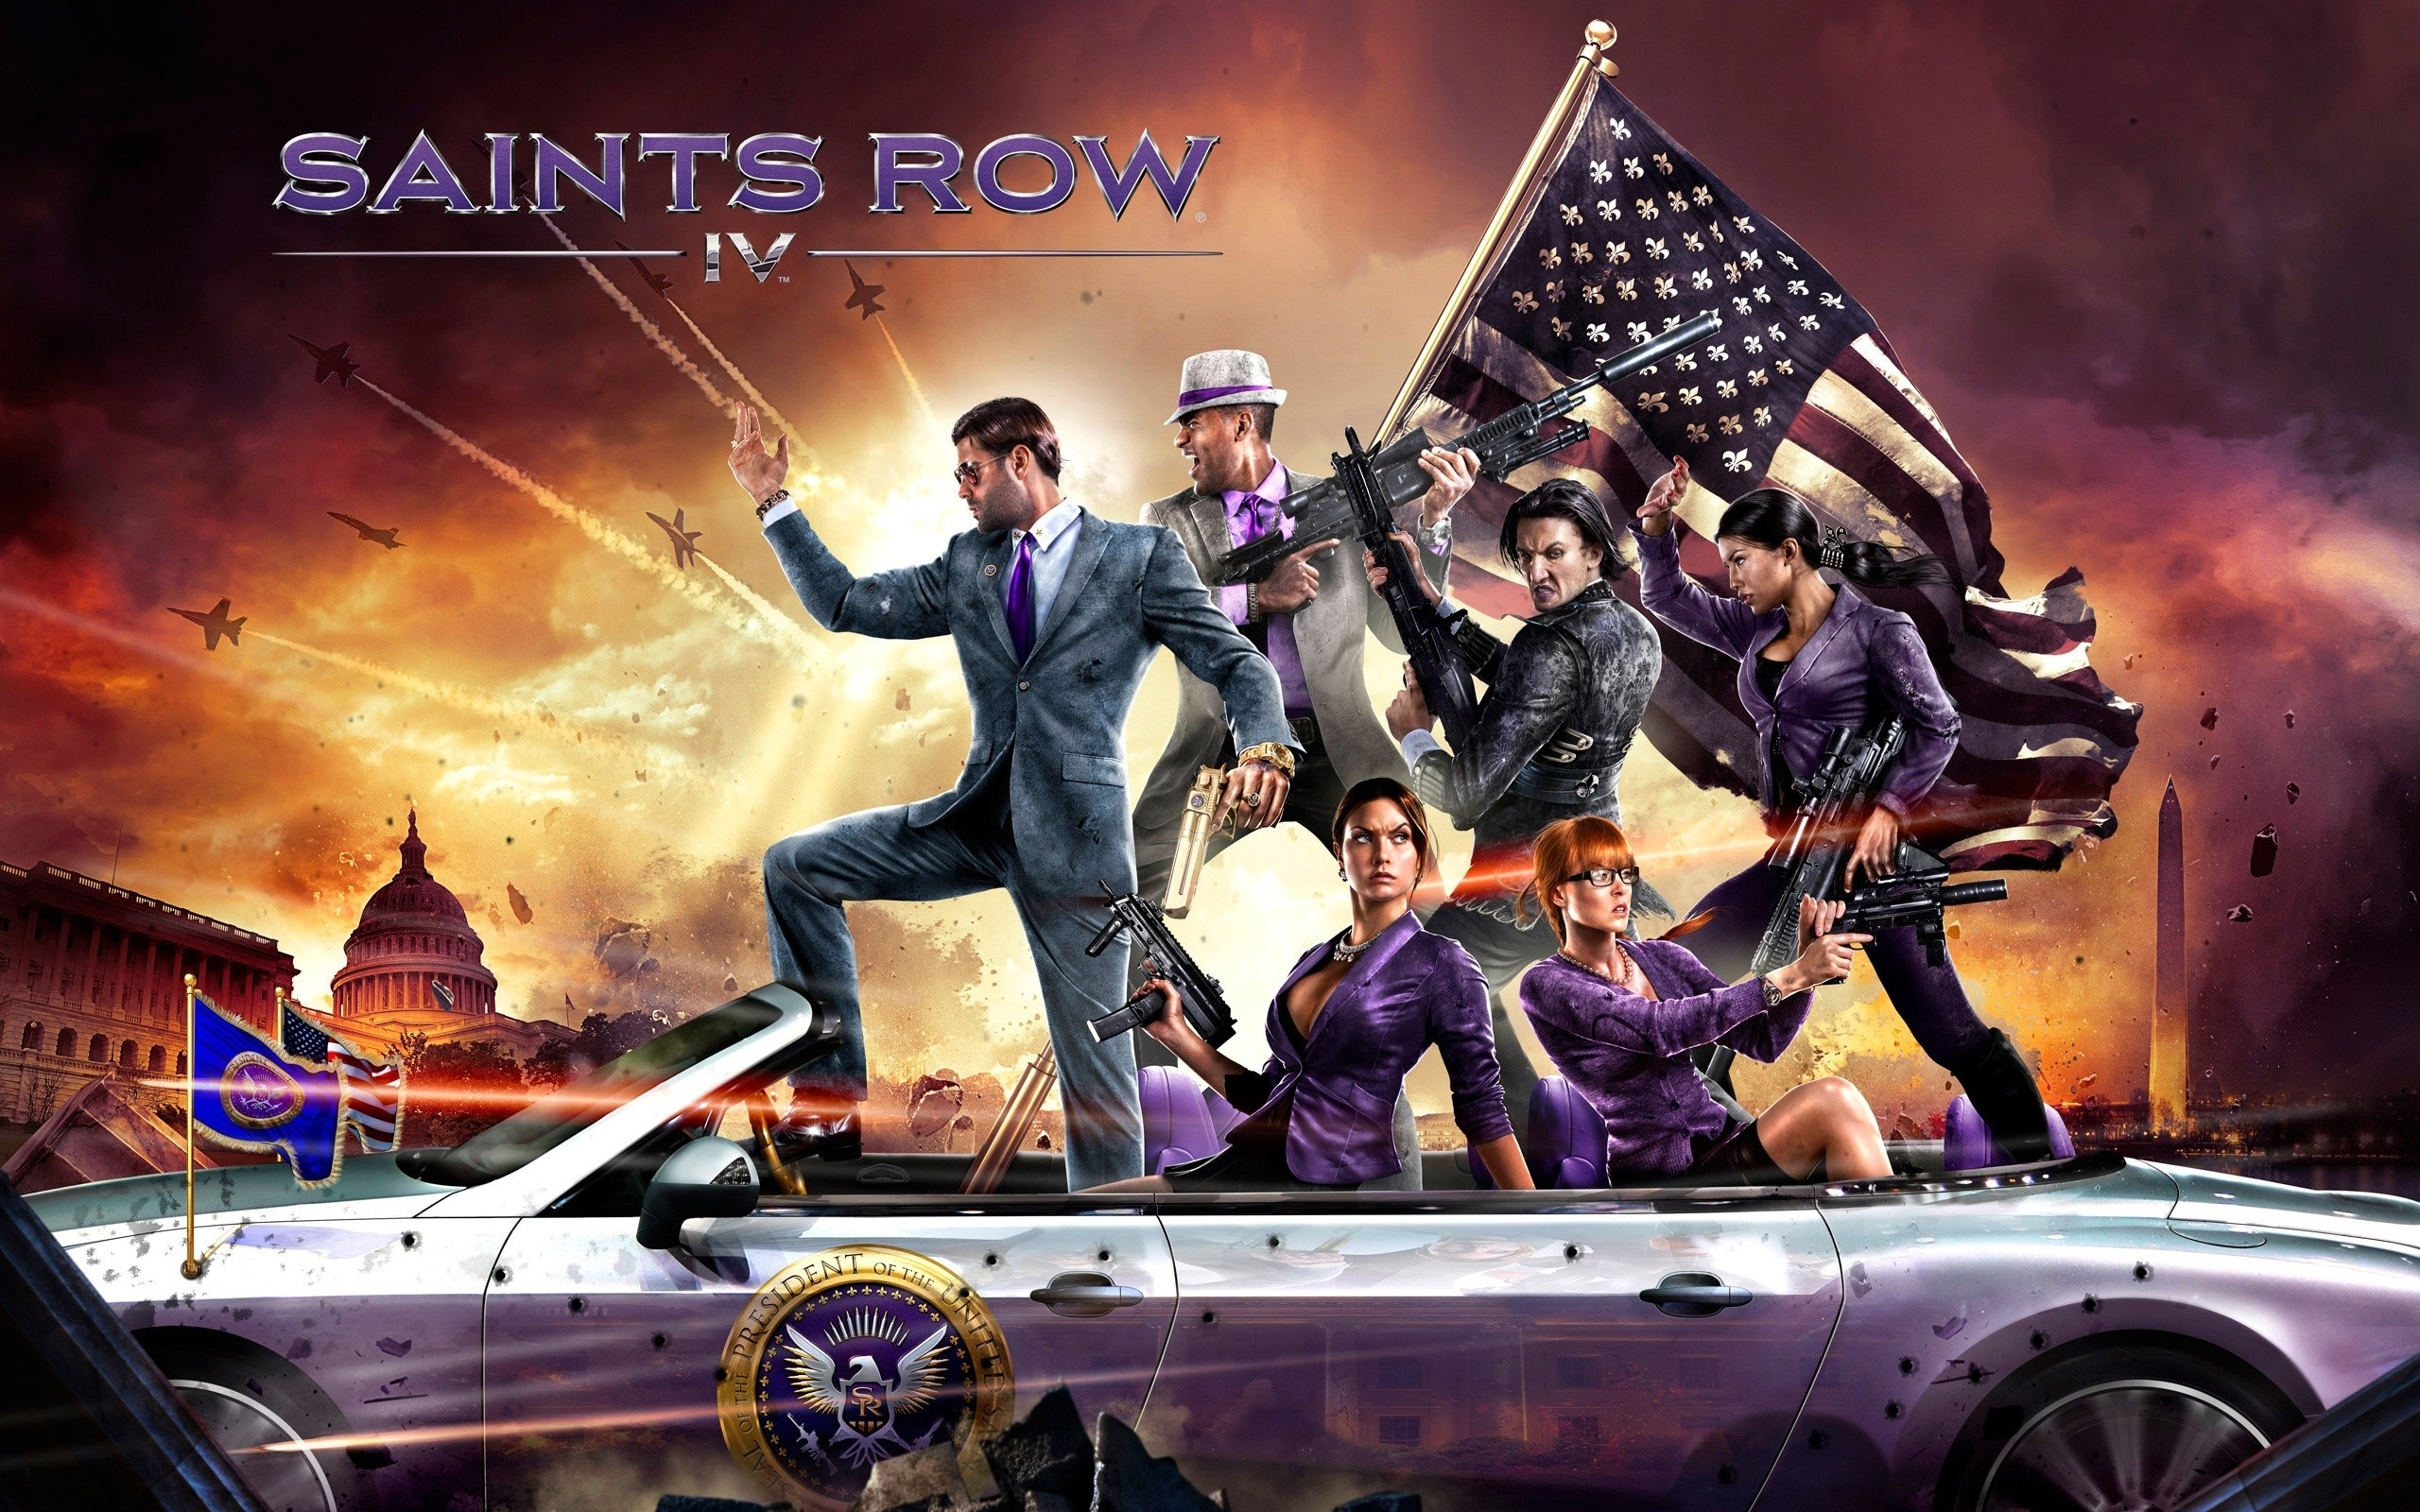 23 saints row iv fonds d'écran hd | arrière-plans - wallpaper abyss